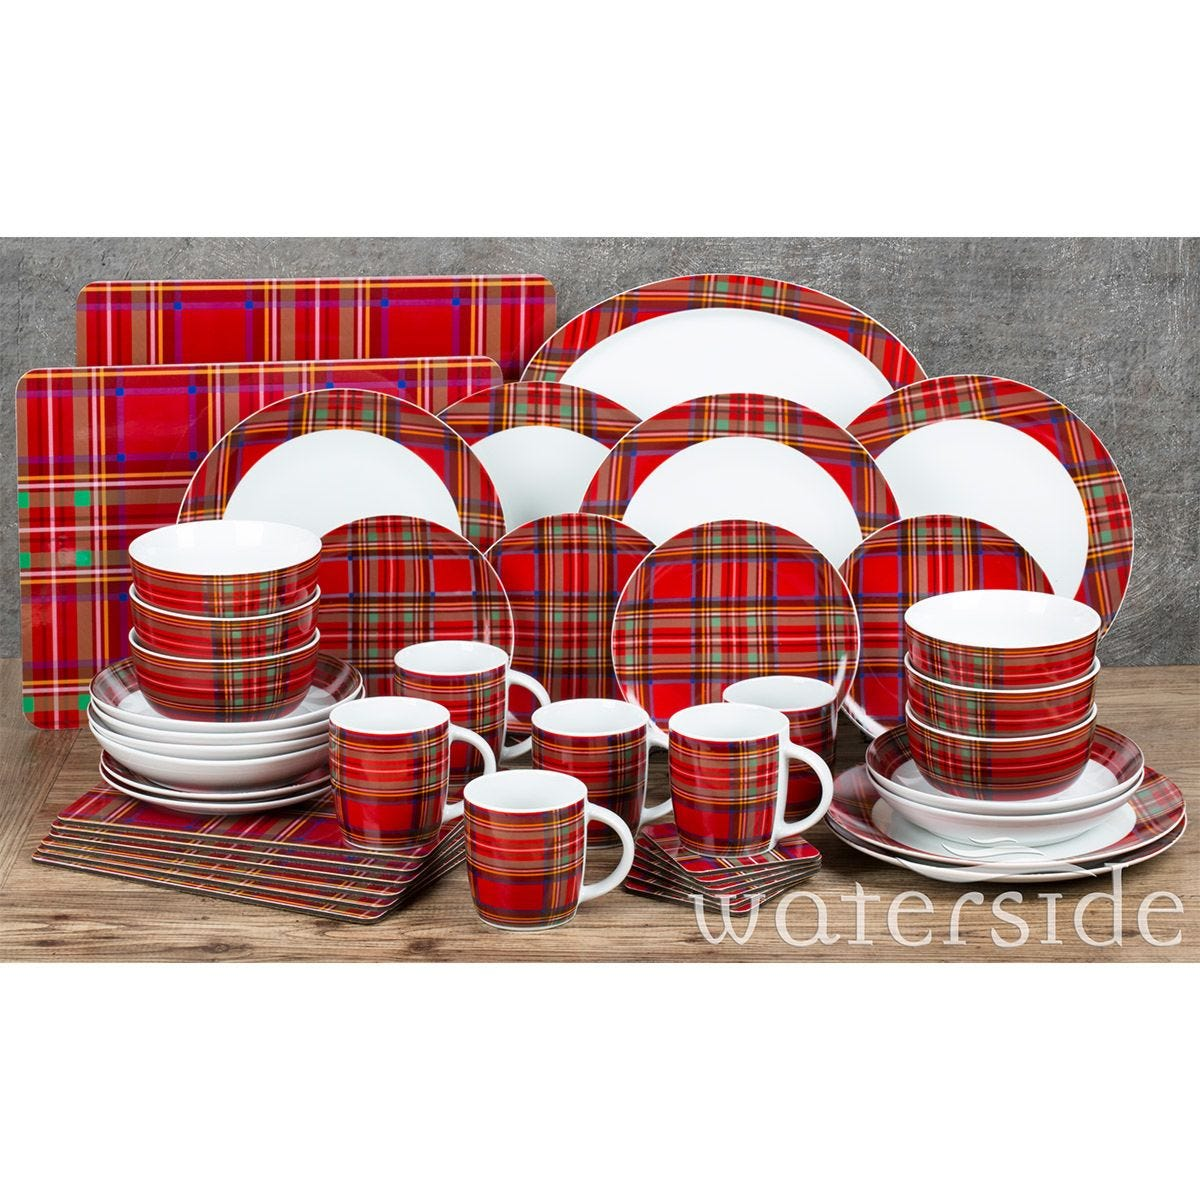 The Waterside 45pc Highland Red Tartan Dinner Set